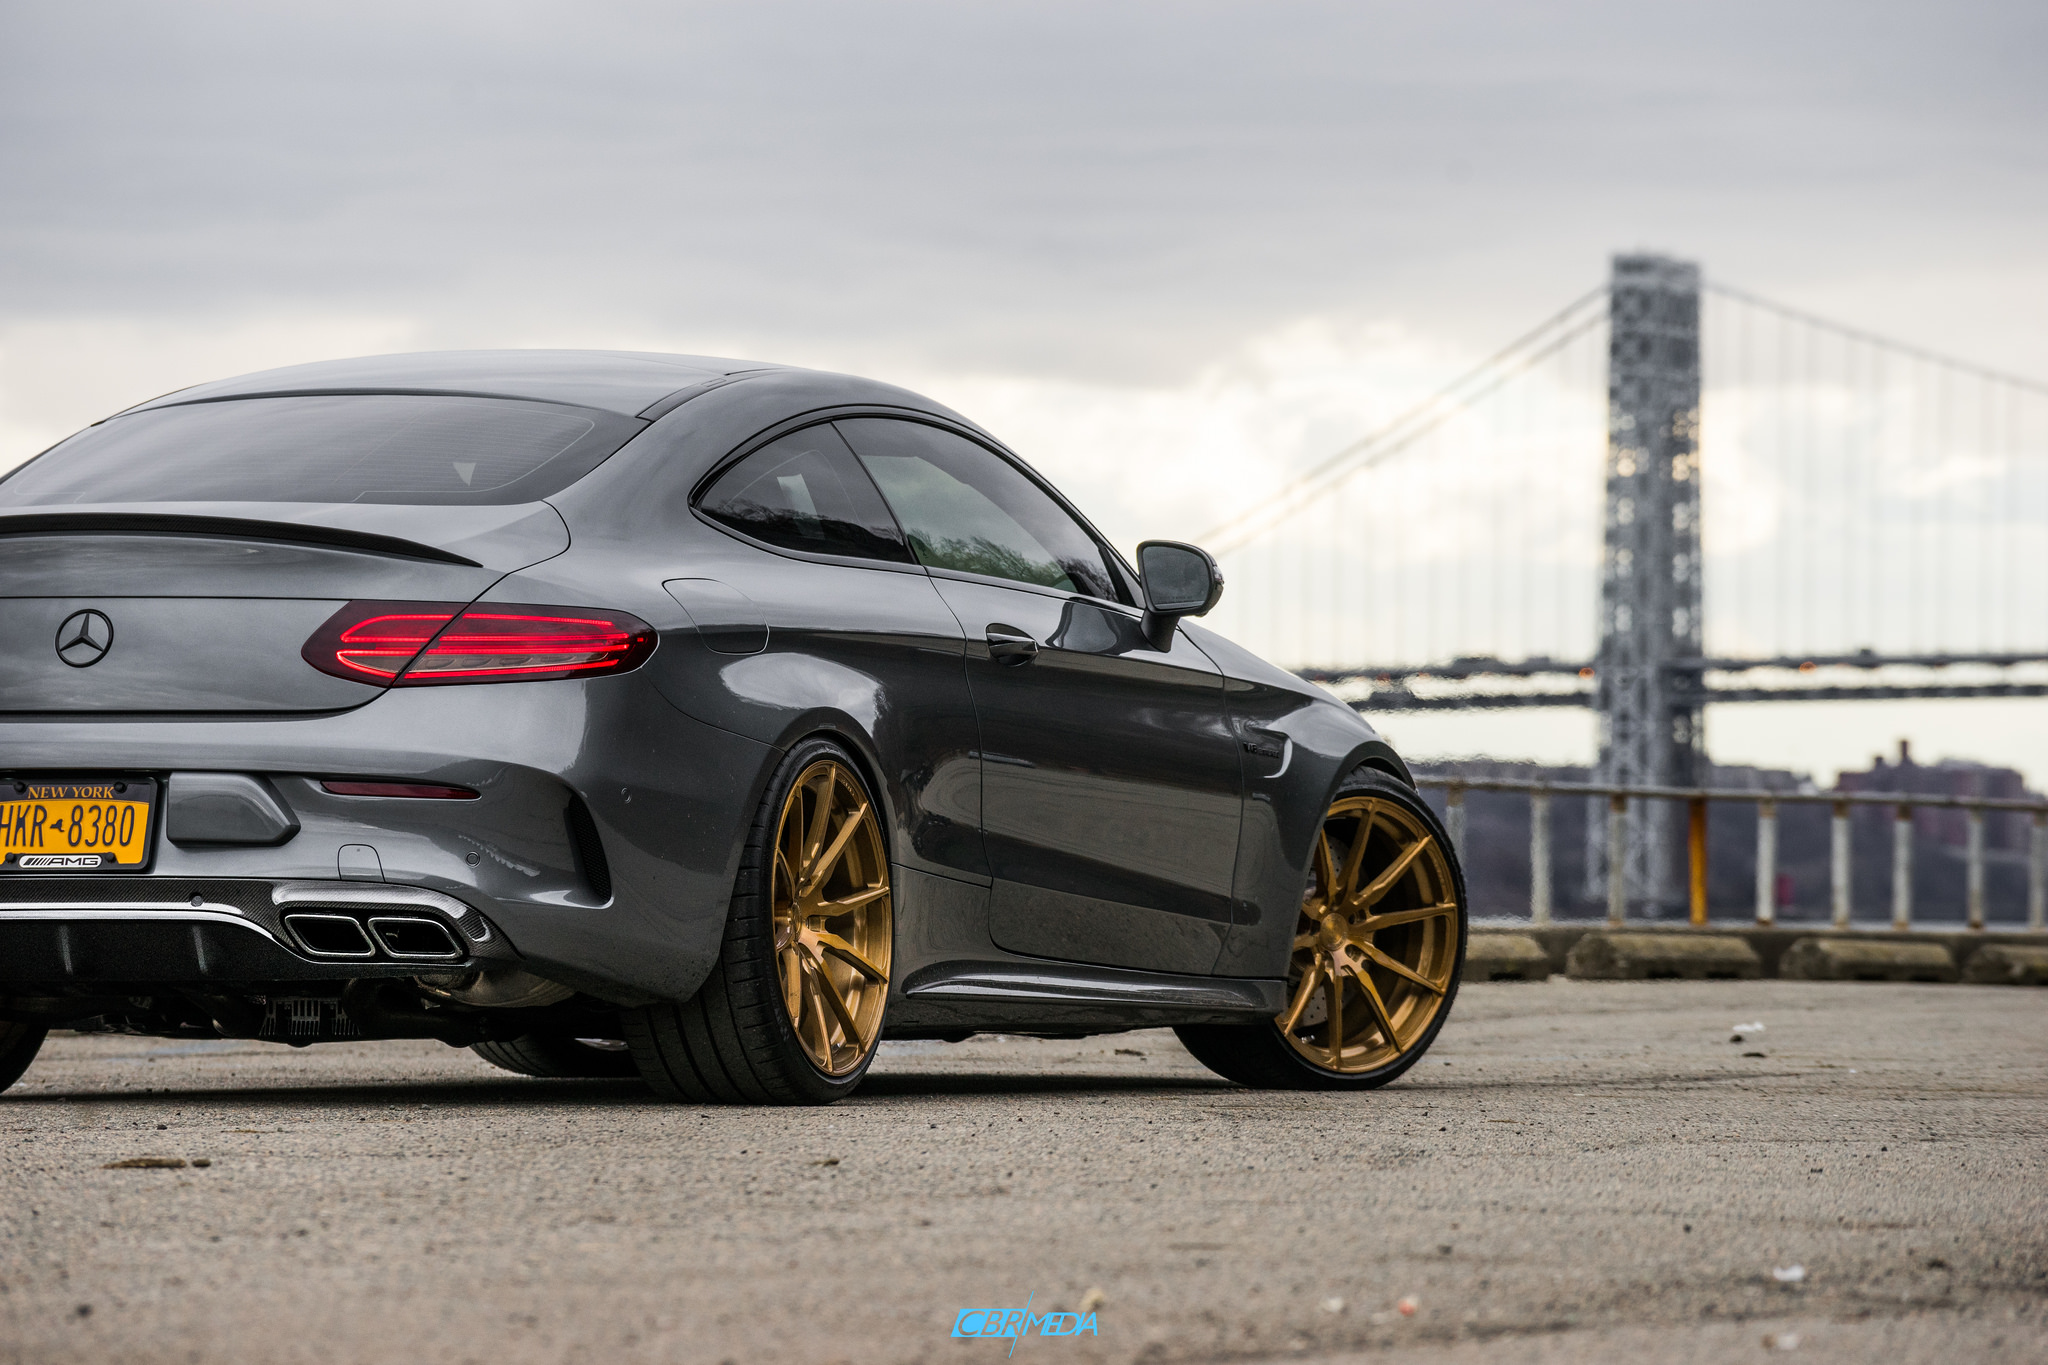 Mercedes AMG C63 Coupe on Velos S10 1 pc Forged Wheels